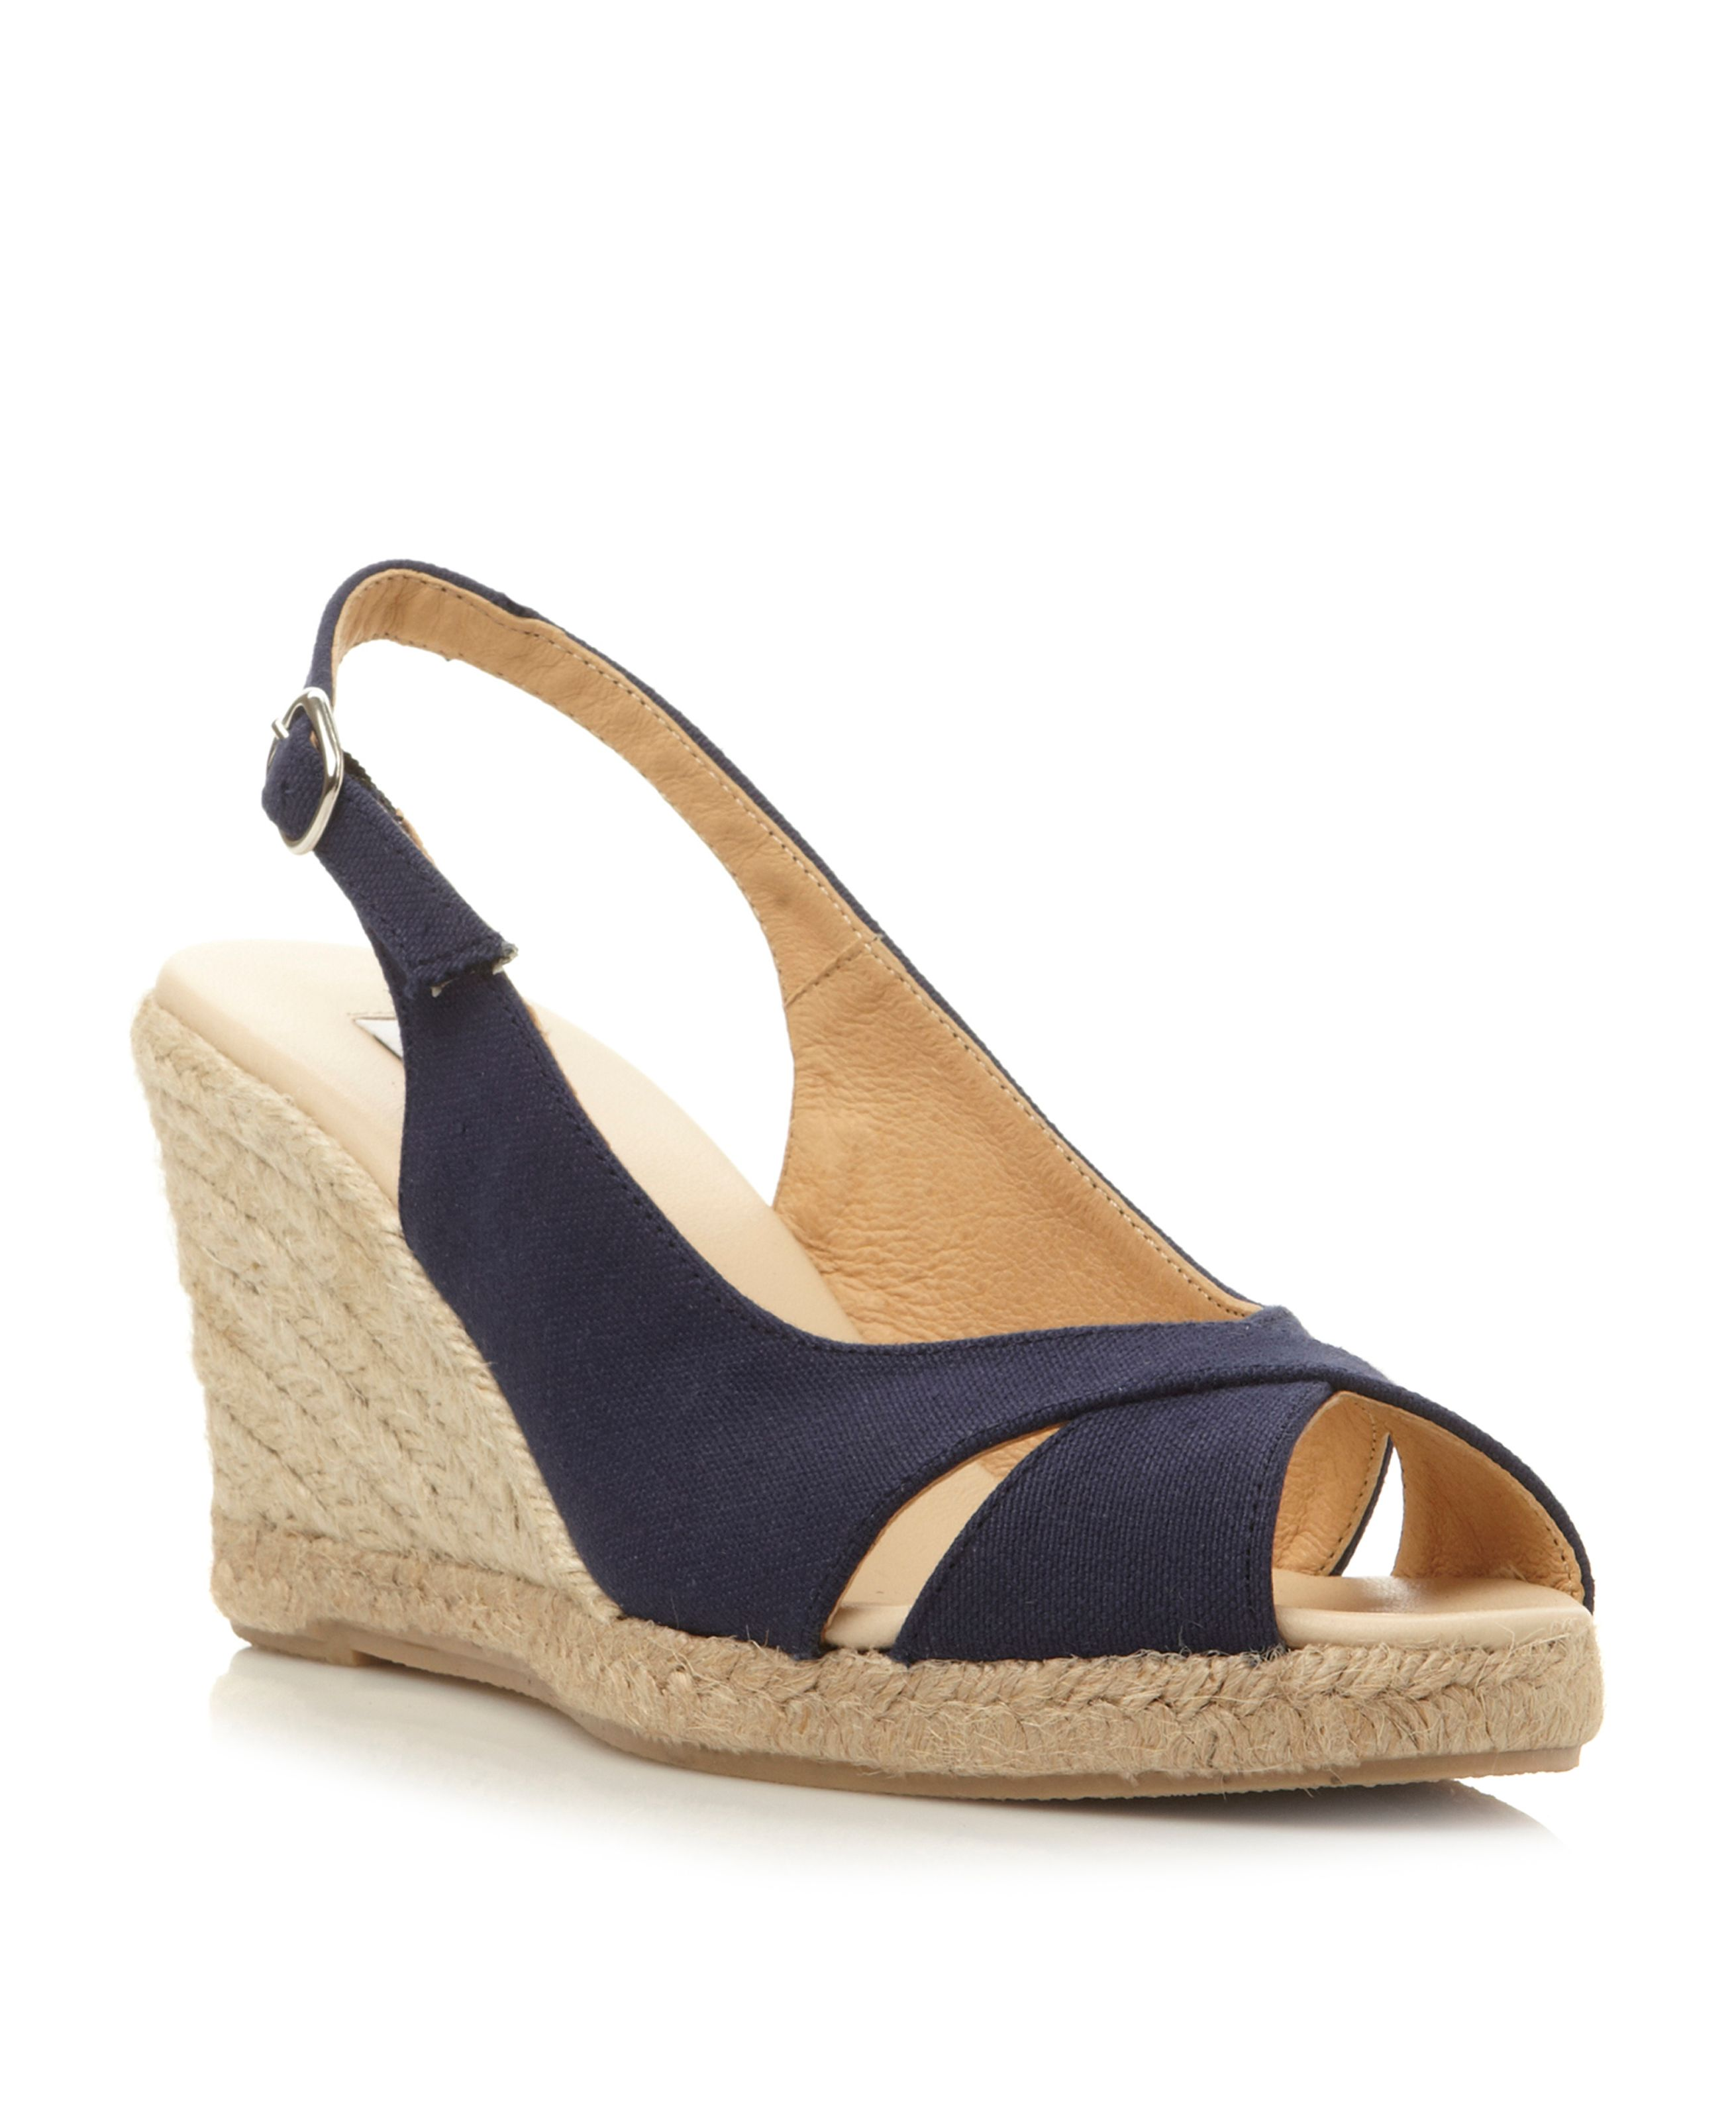 Galliant sling back fabric espadrille